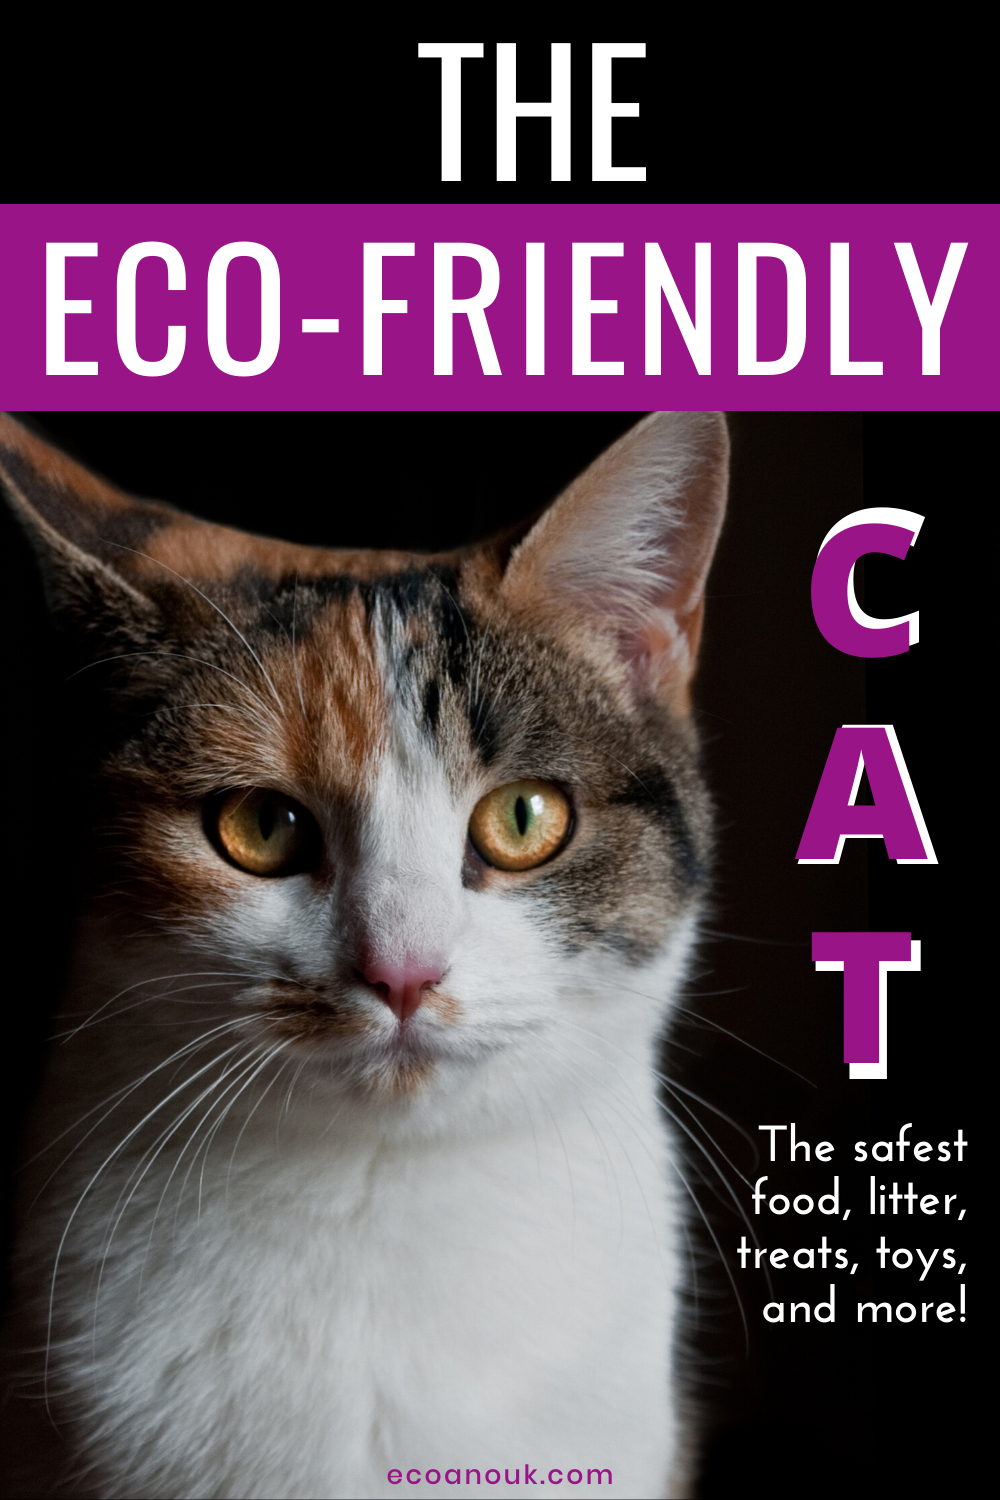 The Complete Guide To Sustainable Cat Care In 2020 Cat Care Cat Shampoo Natural Cat Litter